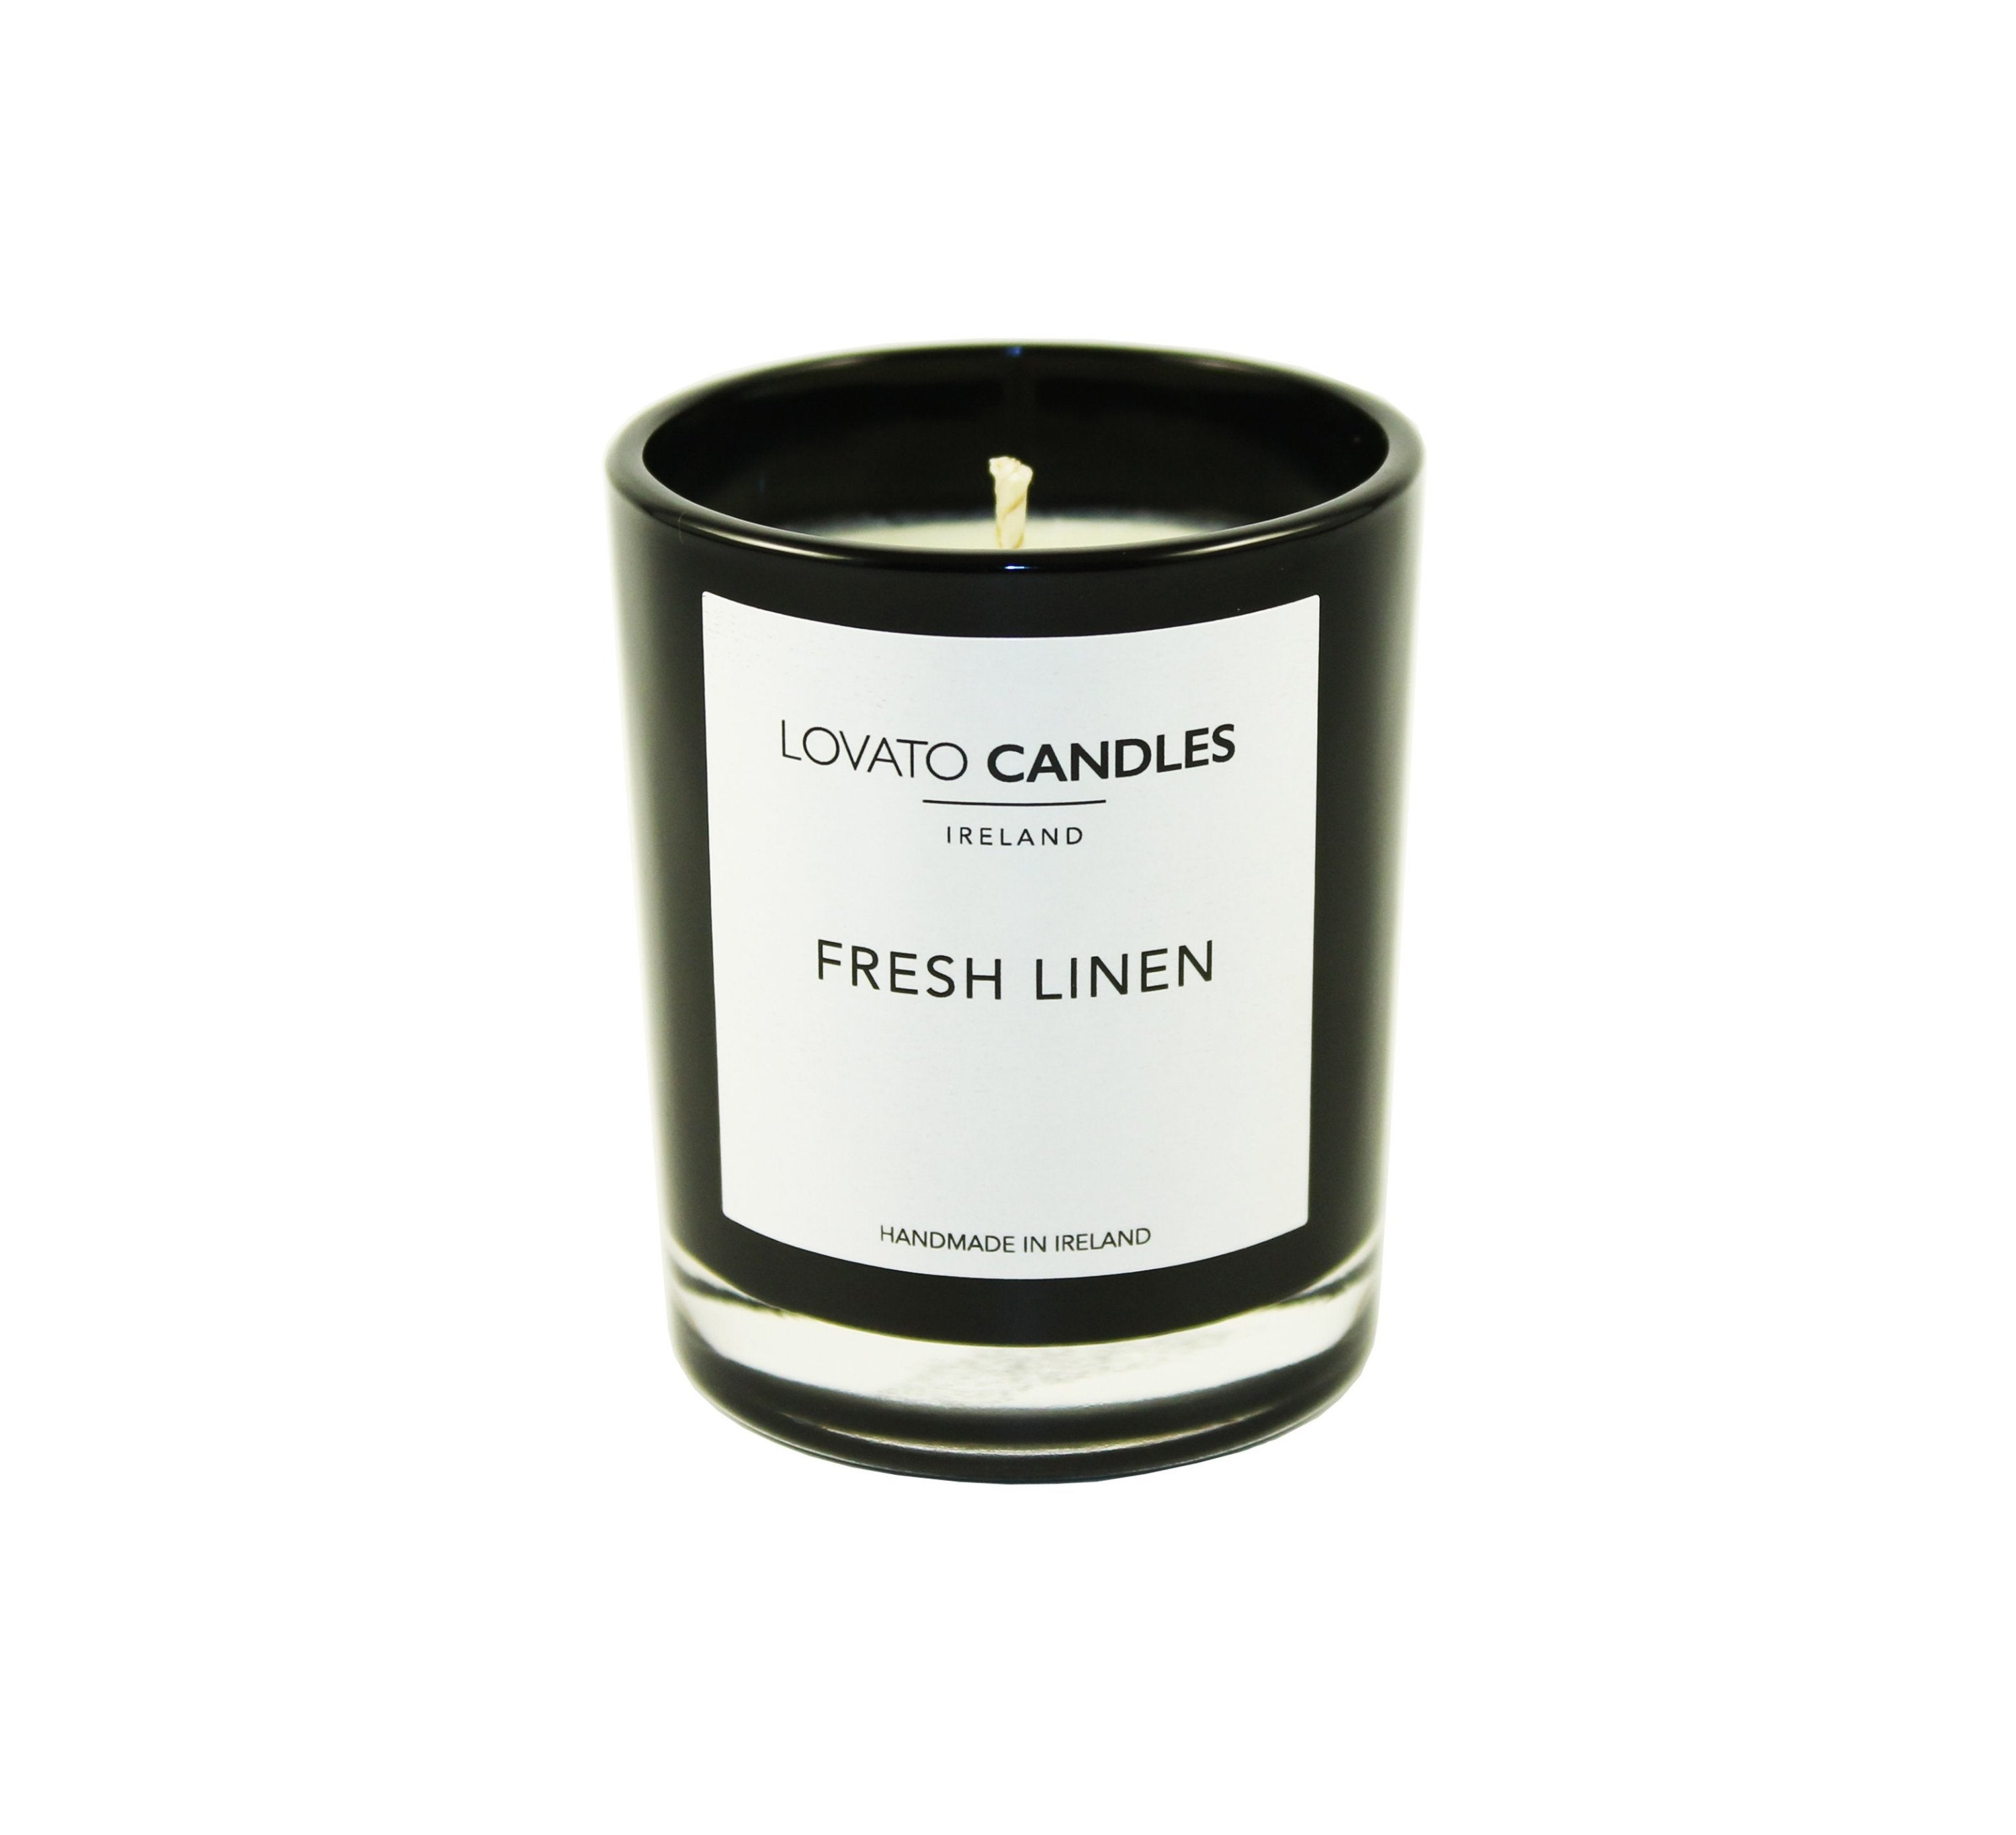 Black Votive Candle - Fresh Linen - Lovato Candles